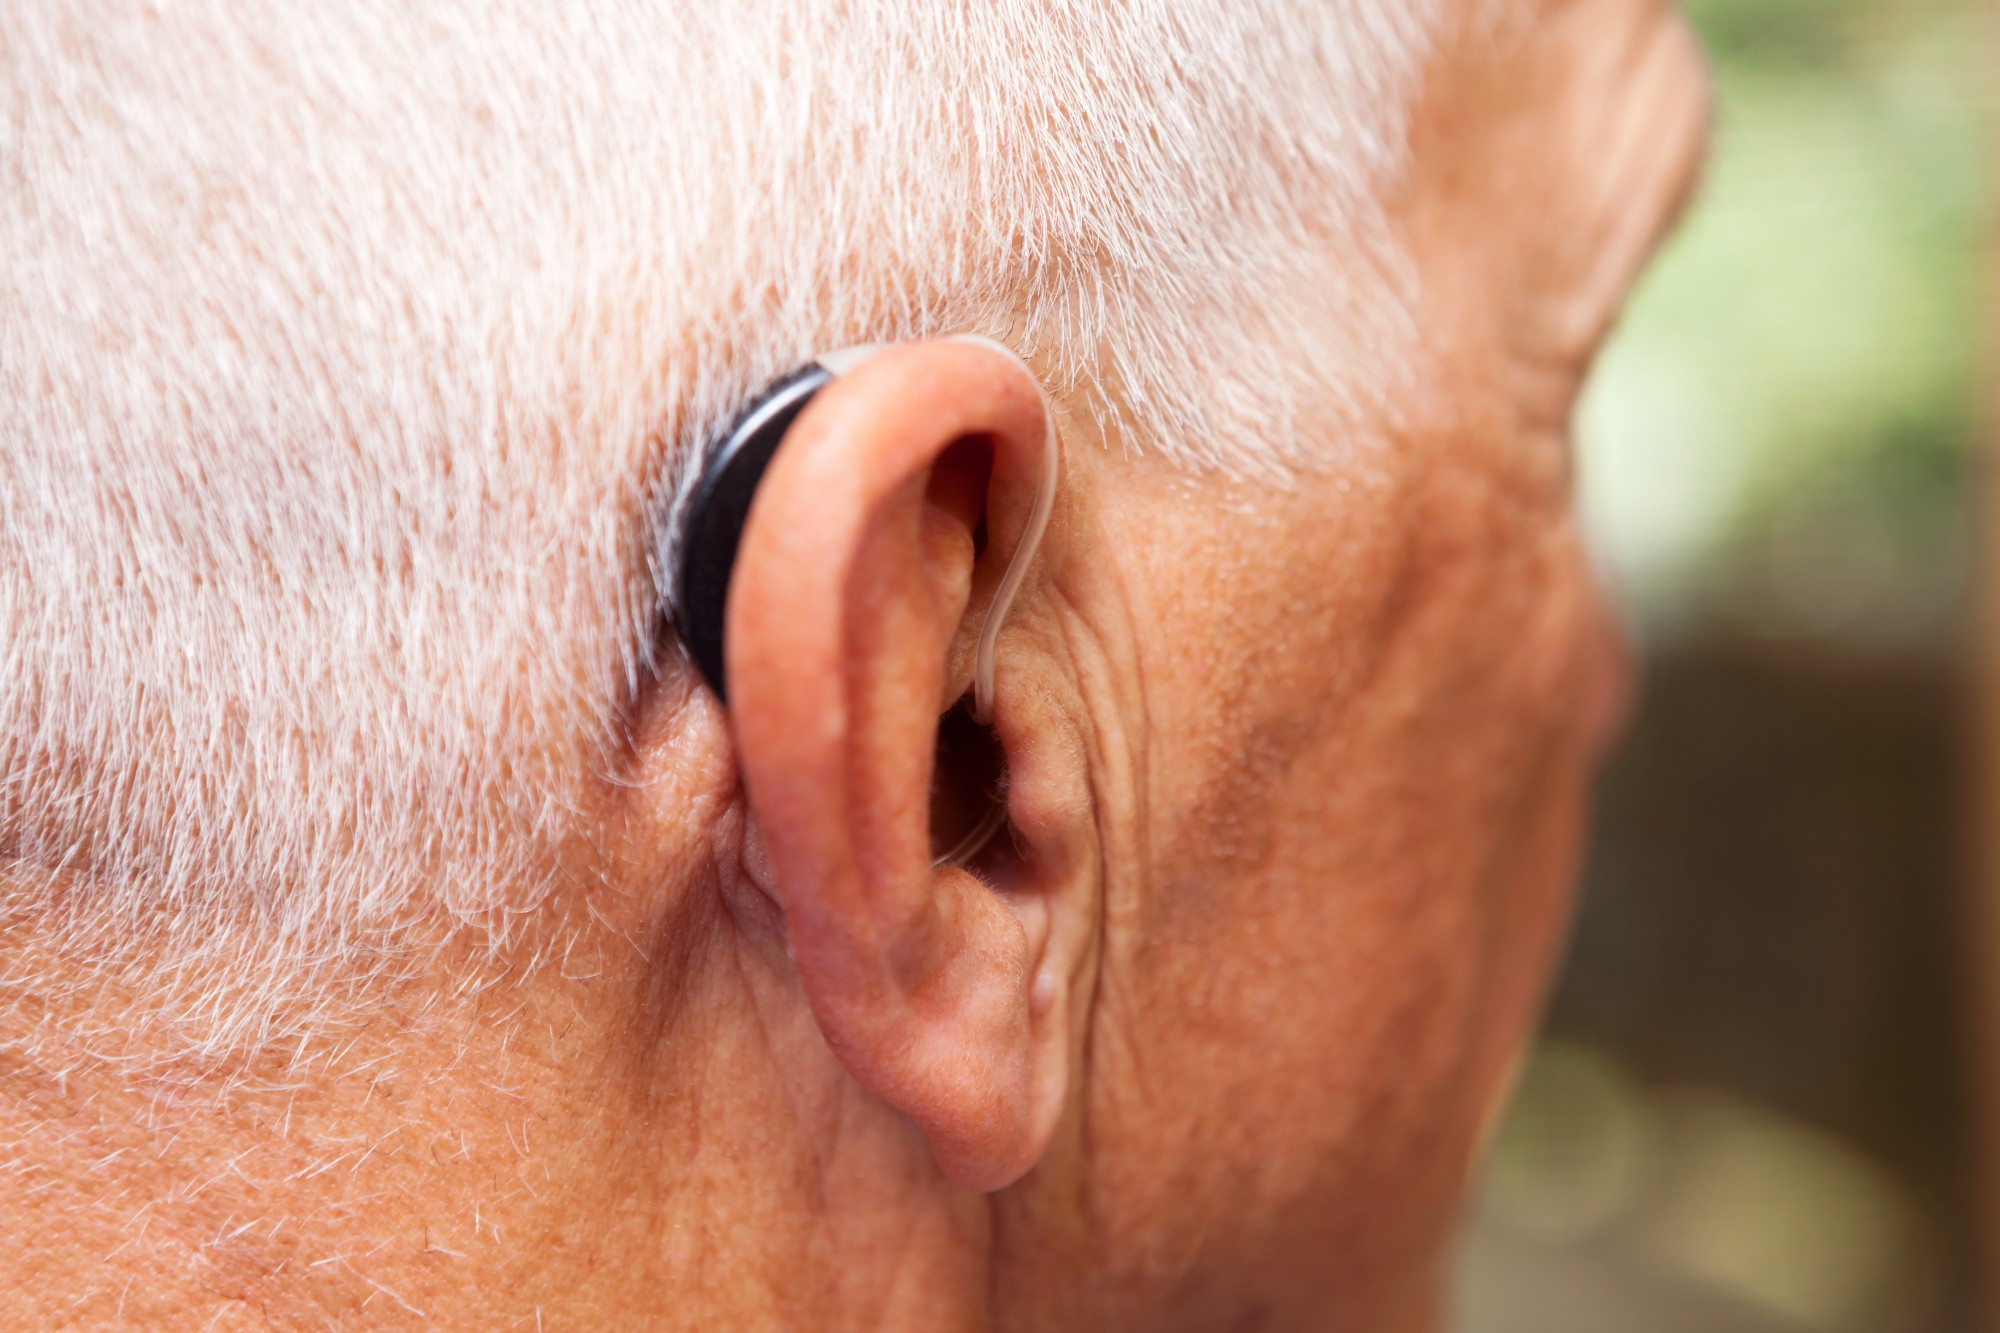 Does Aging Lead to Hearing Loss?  Let's Investigate.